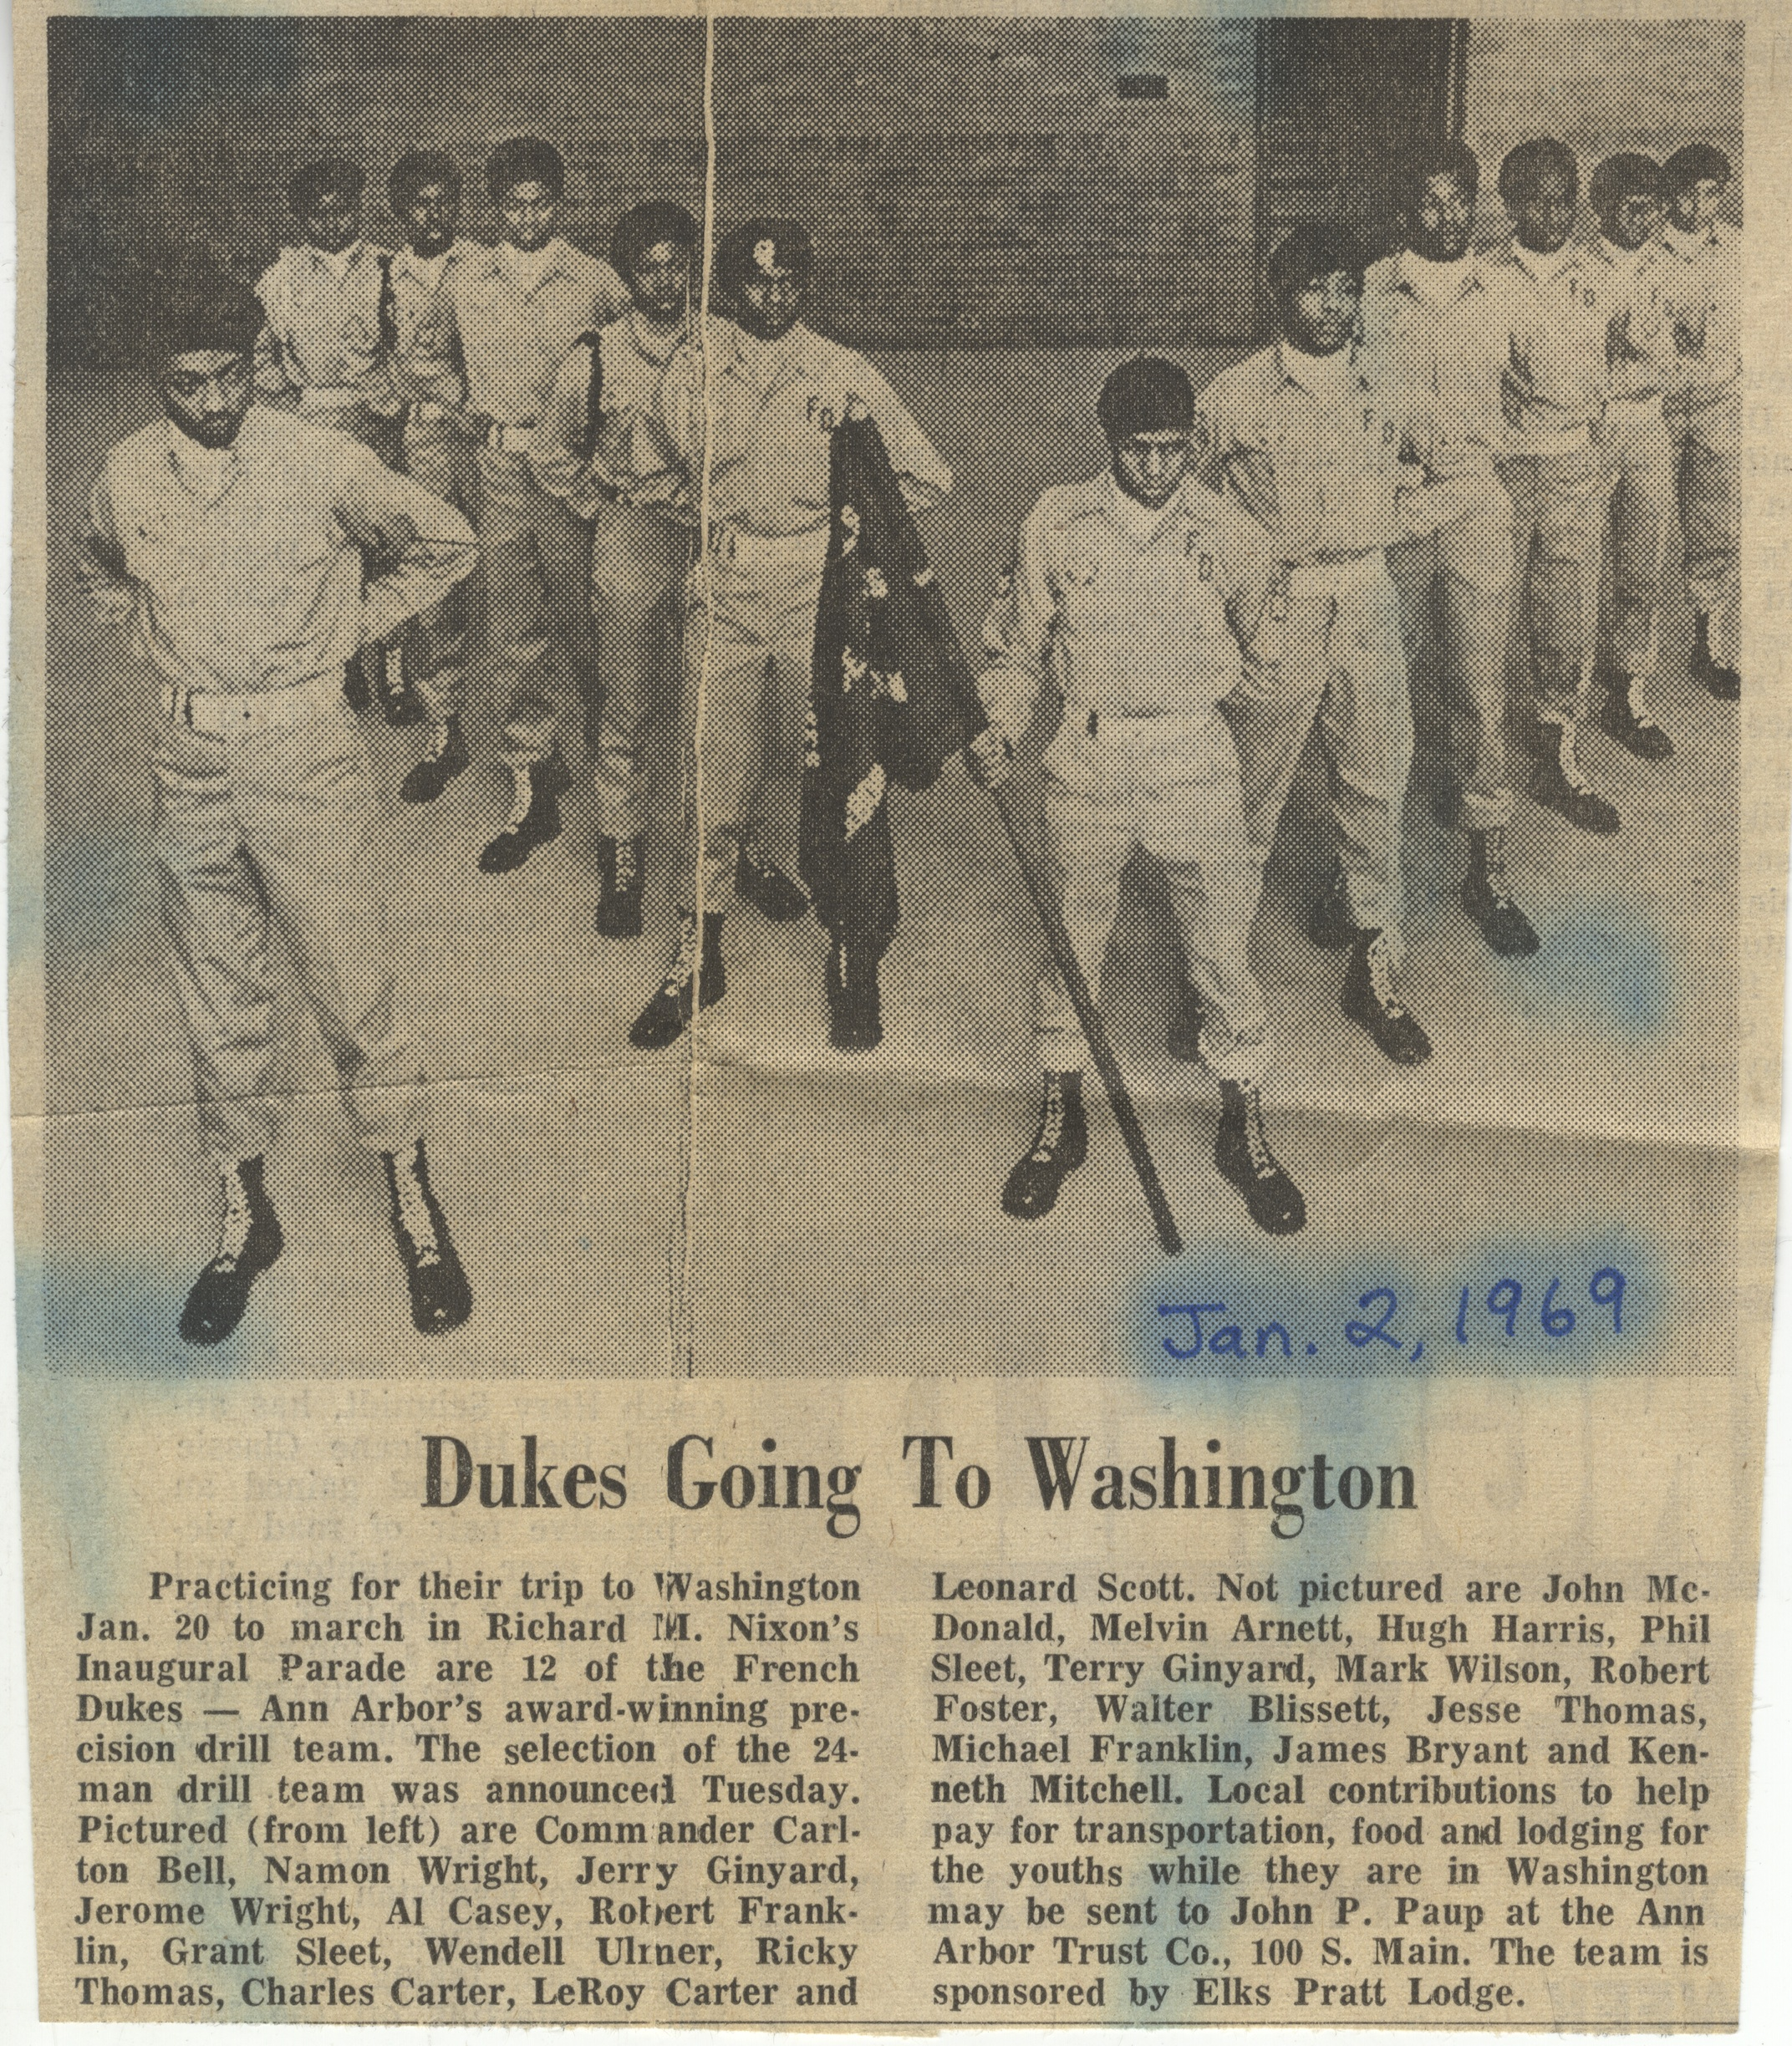 Dukes Going To Washington image